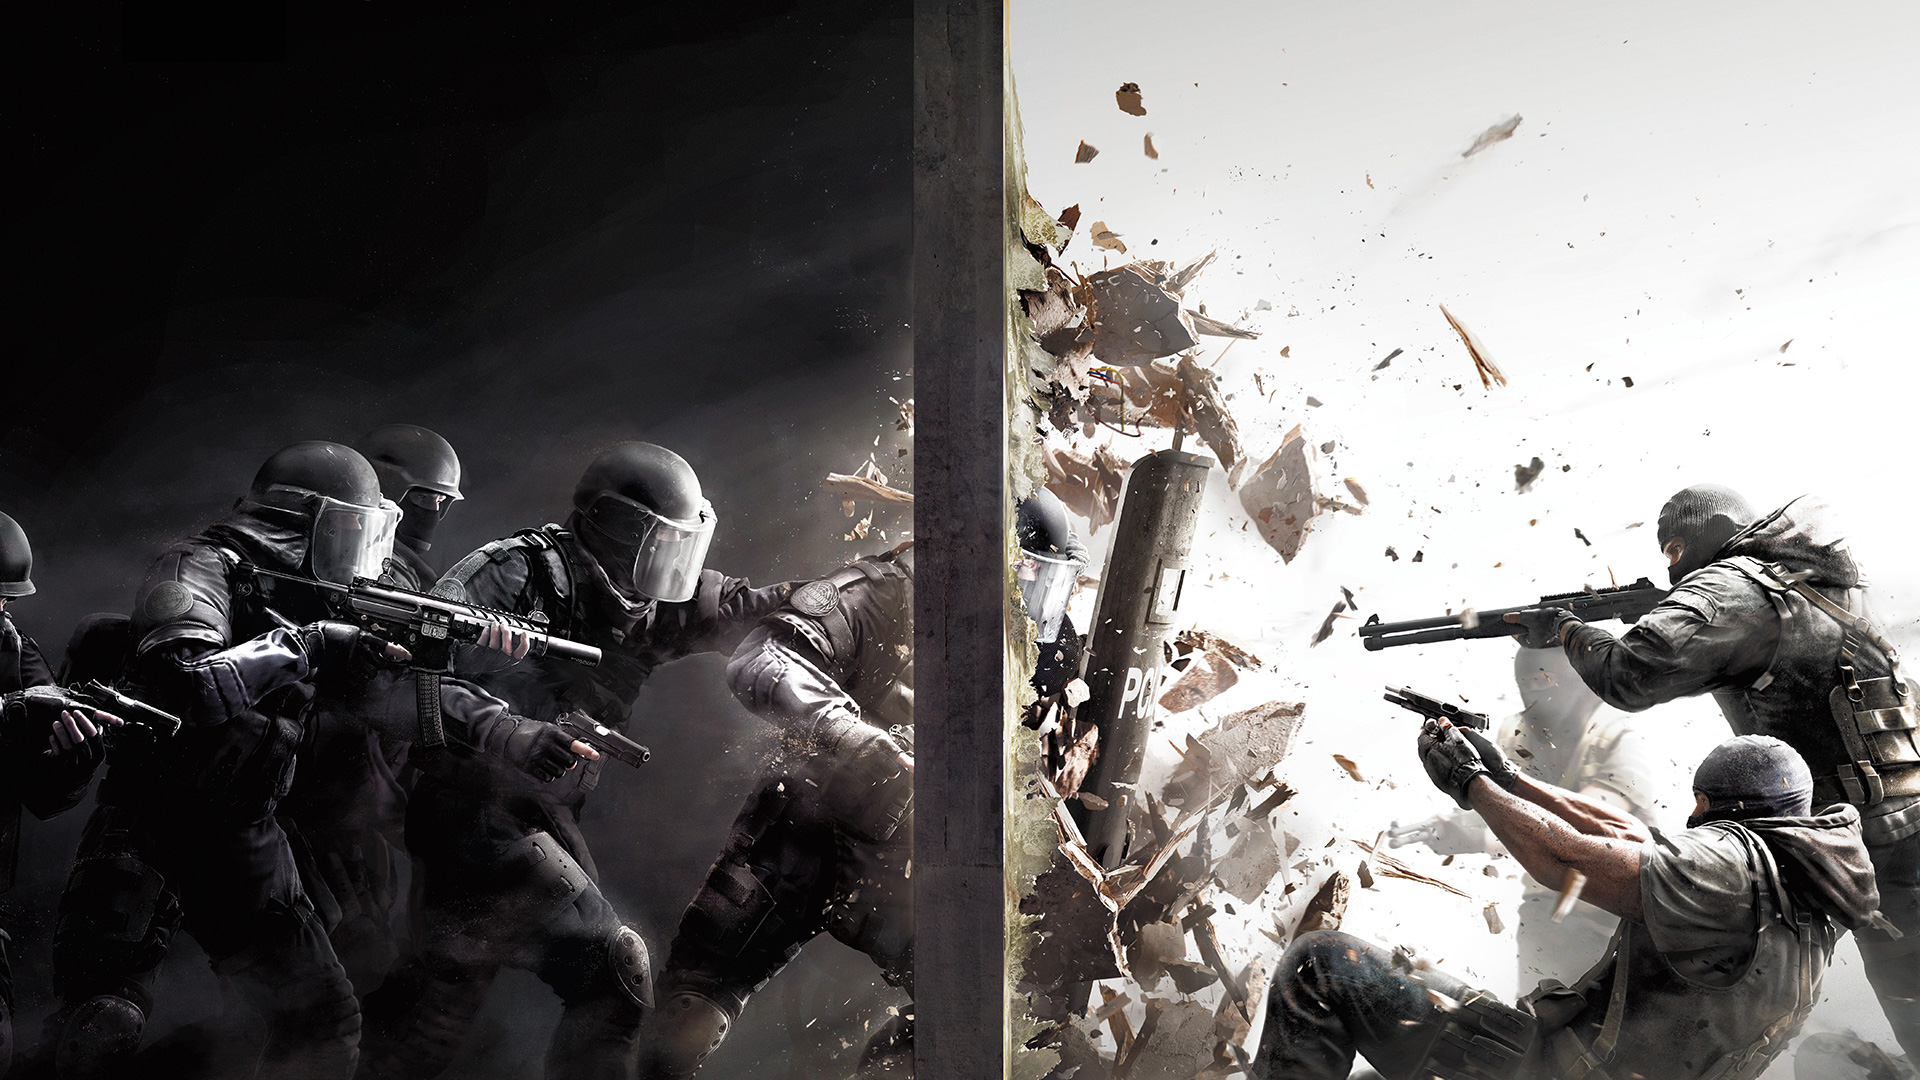 Rainbow 6 Siege Ps Wallpapers